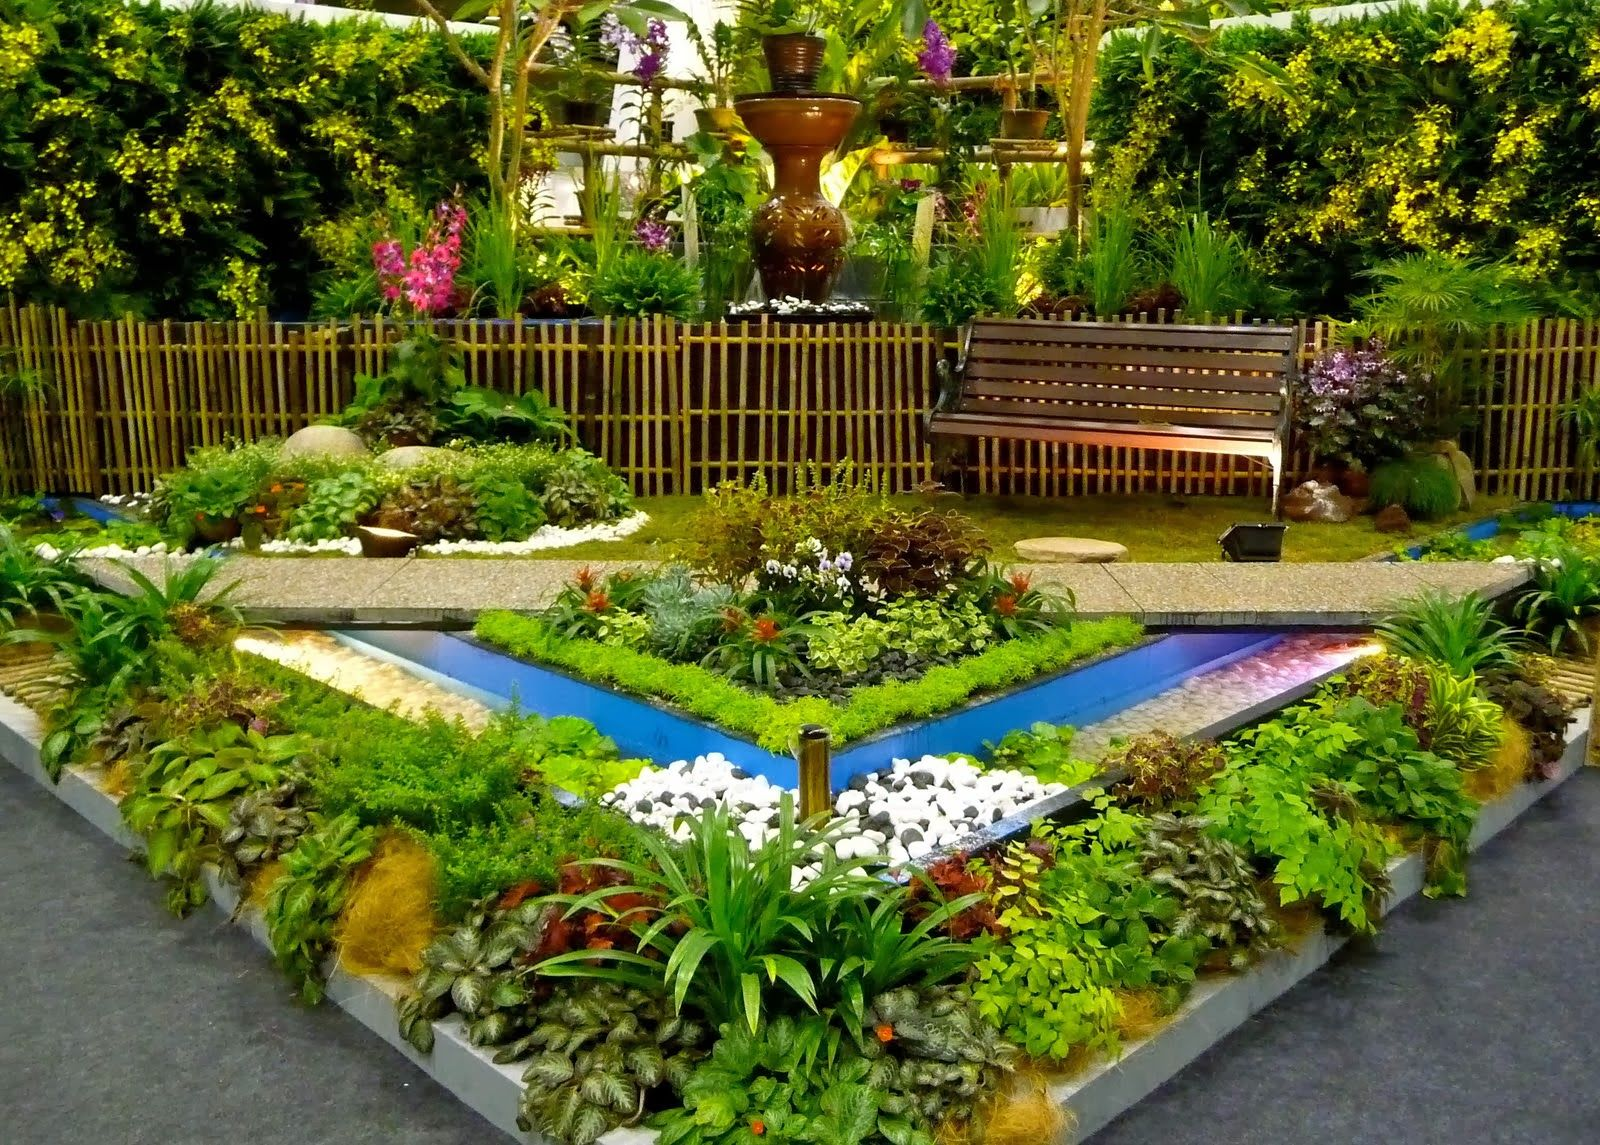 Best landscaping ideas i have ever seen wow design for Backyard garden design